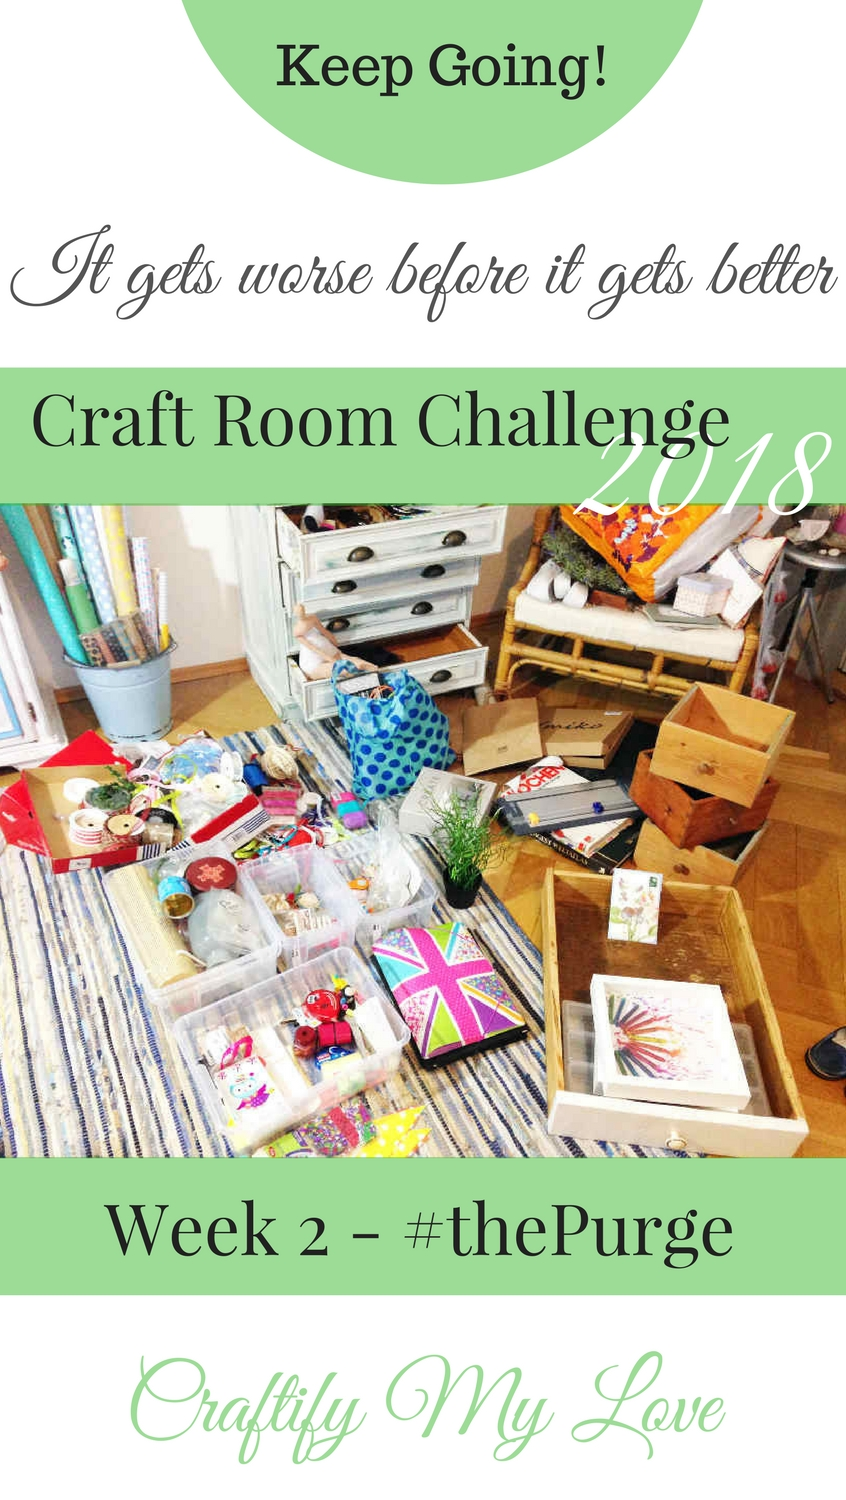 Don't quit the craft room makeover! It'll get better. Follow these simple 5 steps to rock the craft room purge. | #craftroomchallenge #confessthemess #purge #donate #gettingridof #craftroommakeover #itgetsworsebeforeitgetsbetter #craftsupplies